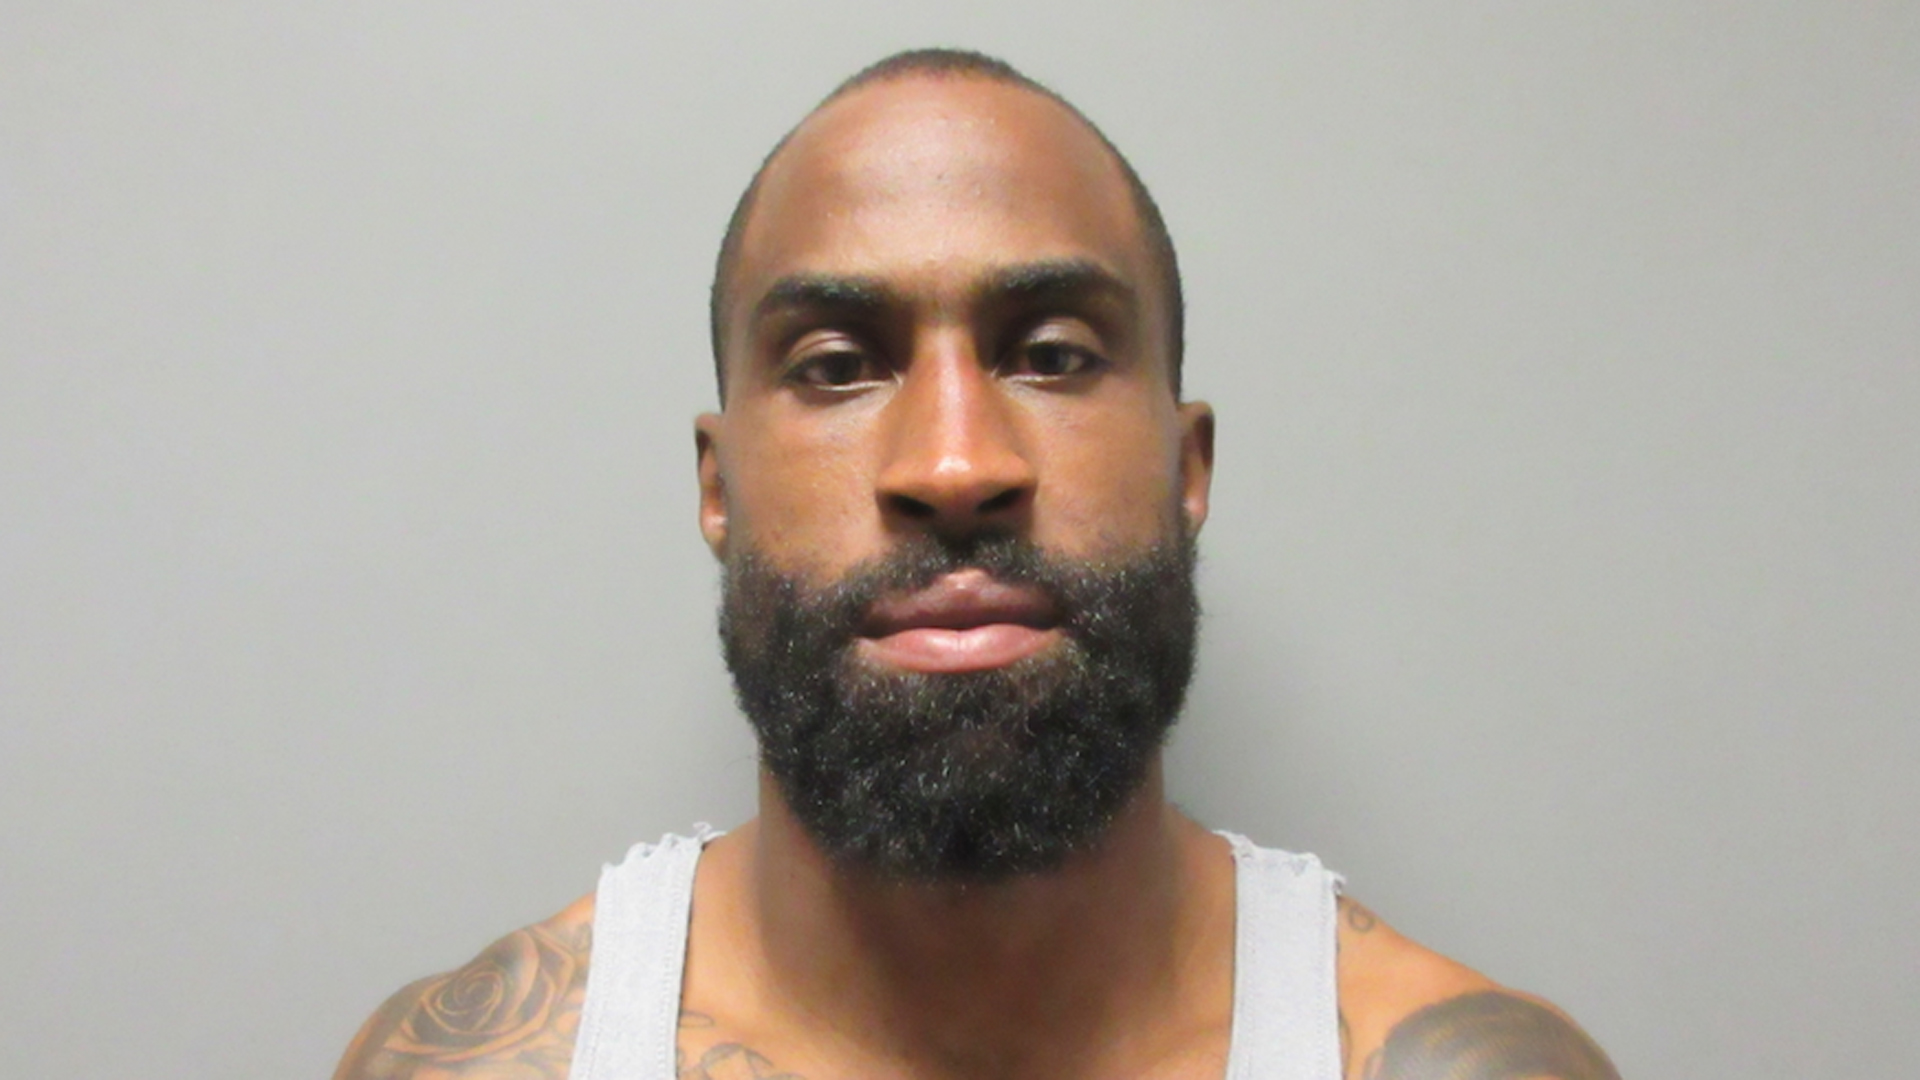 Brandon Browner, a former NFL player, is seen in a booking photo released by La Verne police on July 8, 2018.